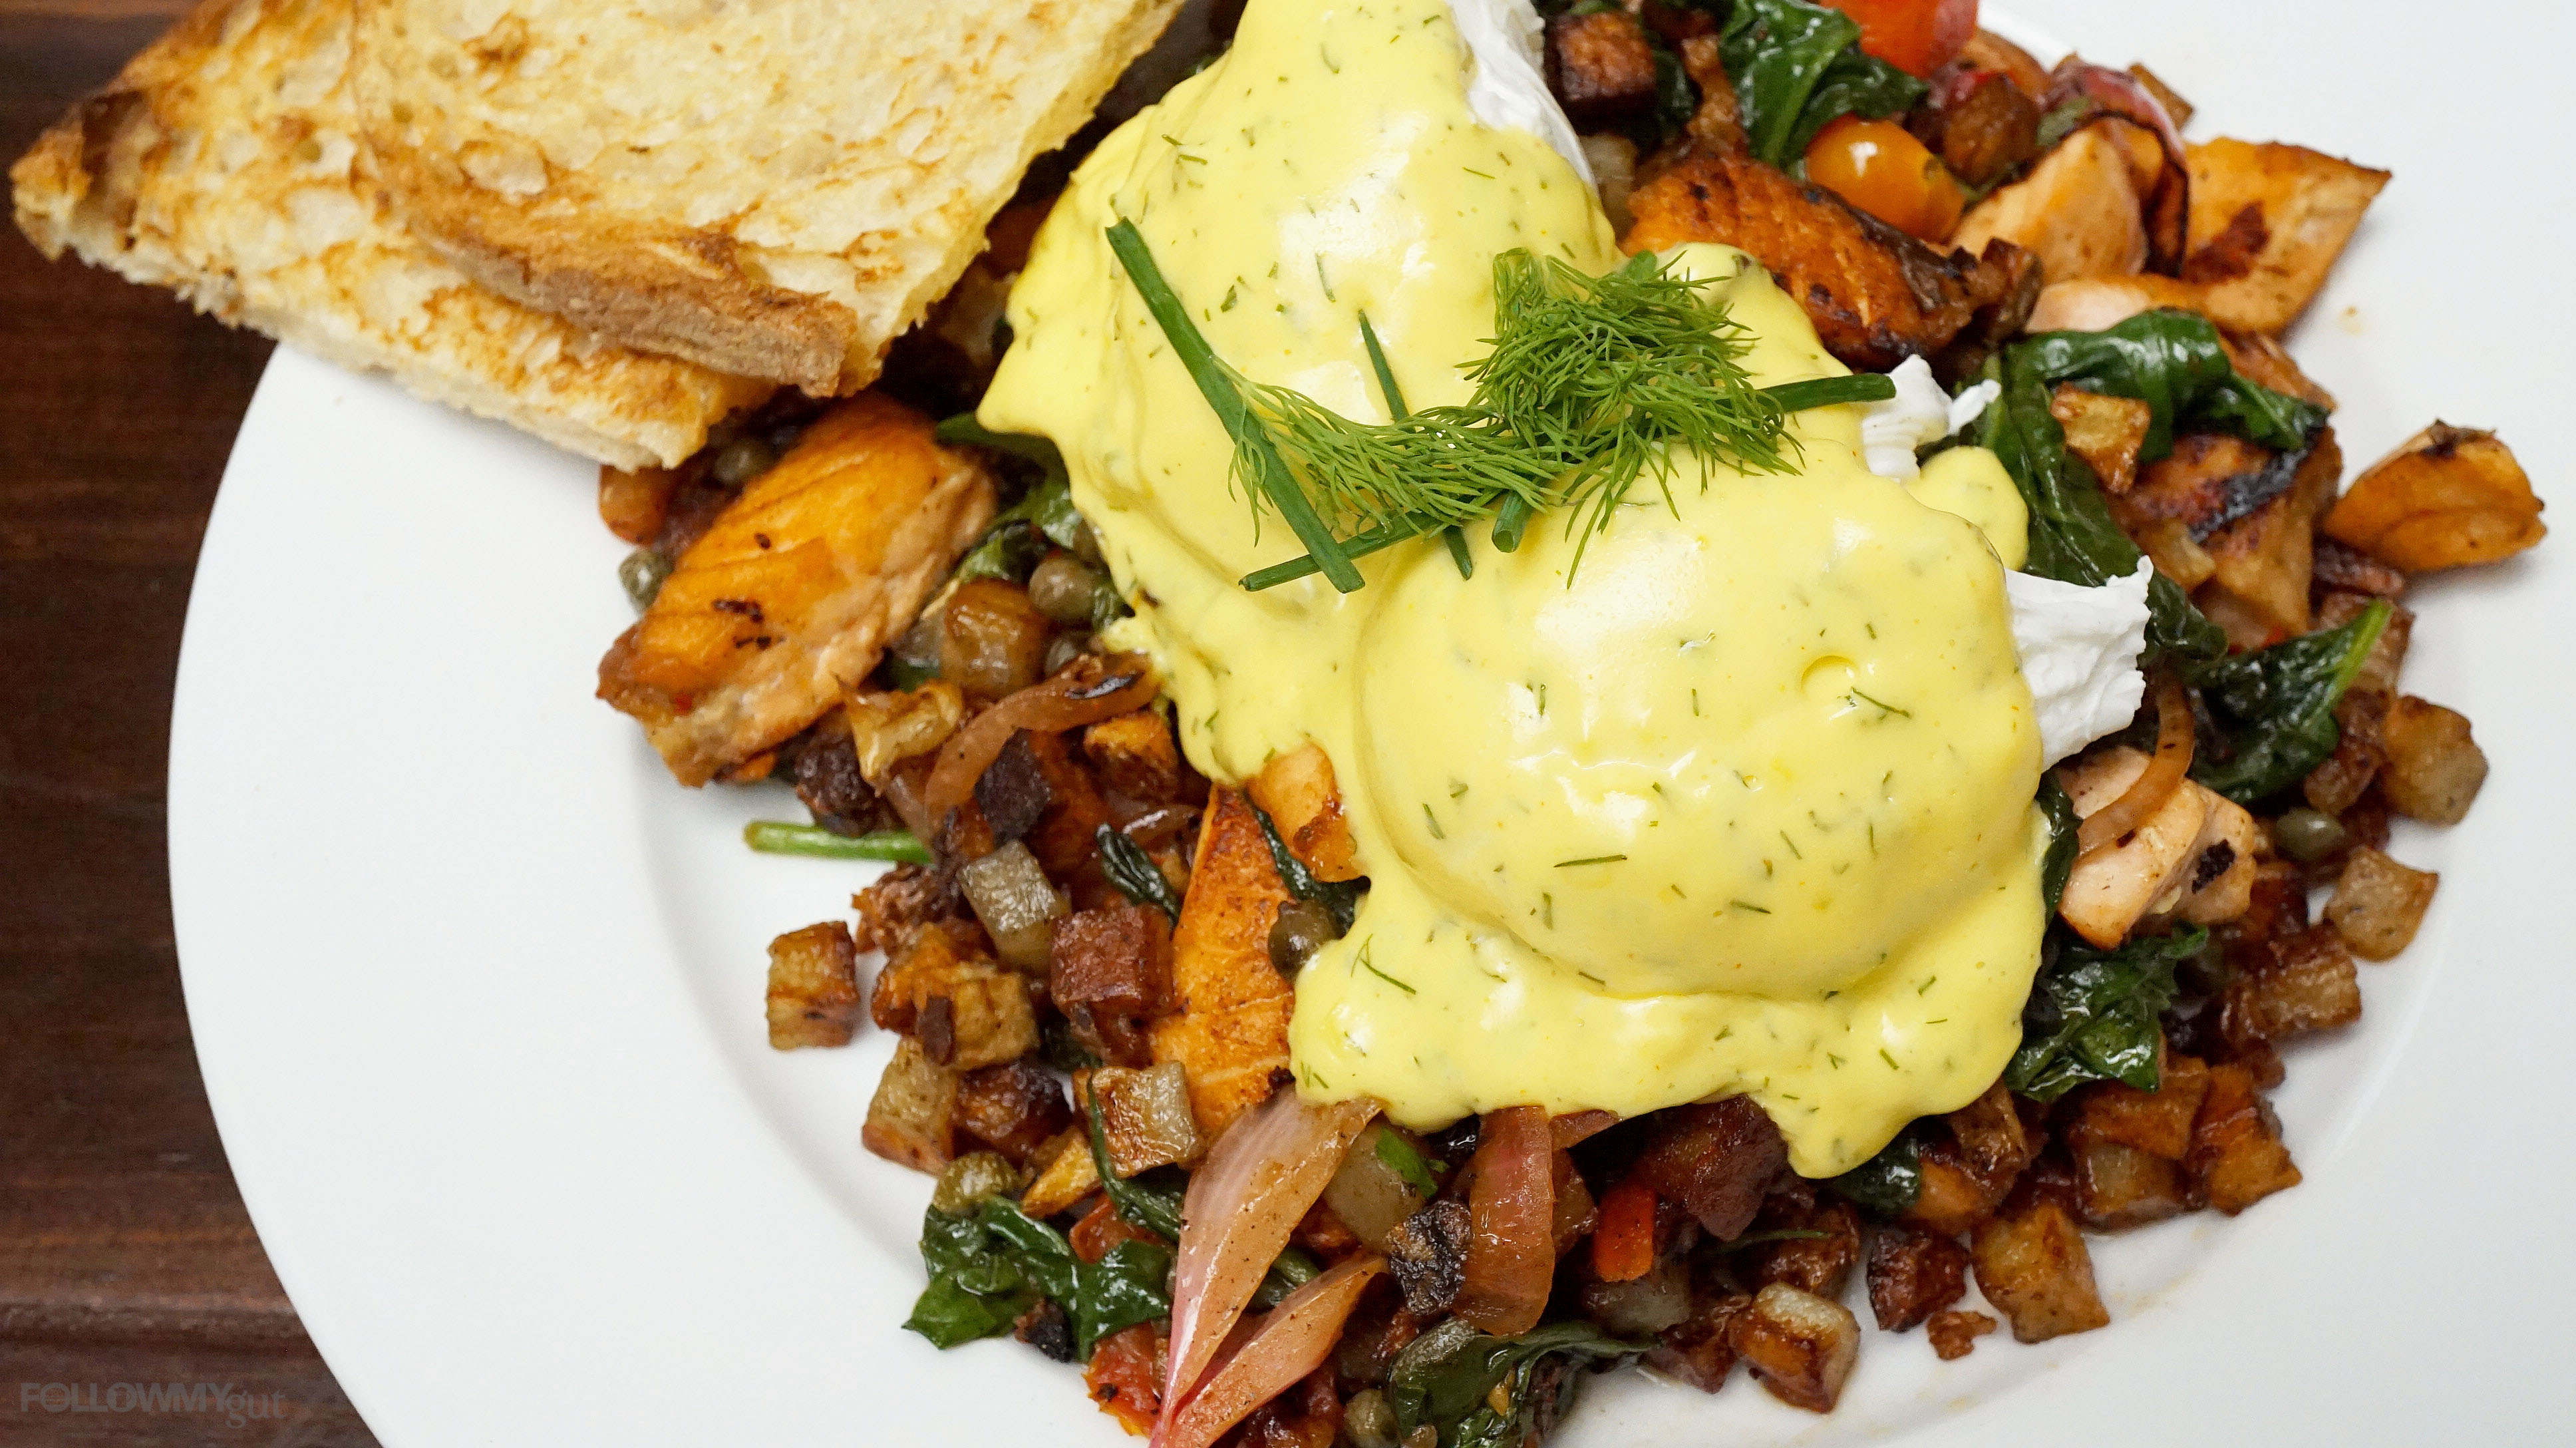 The Breakfast At Blu Jam Caf� Was Delicious And I Loved The Creative Take  They Had With The French Toast While I Can't Say That It Has Changed My  View On